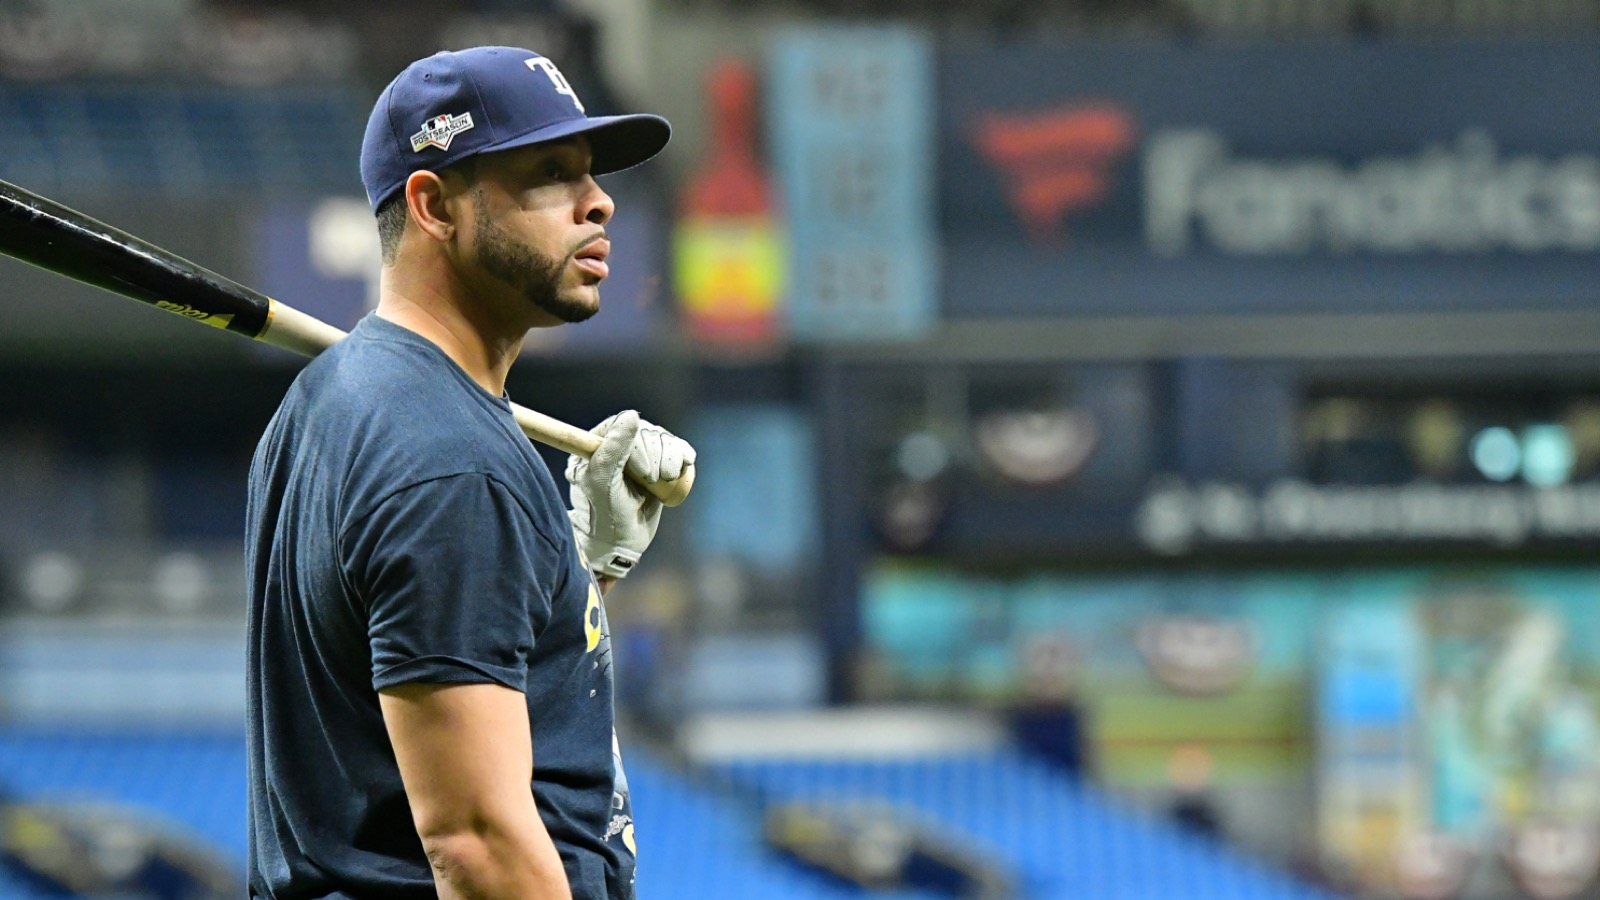 Without A Dad In His Life, Tampa Bay Ray Tommy Pham Gives Himself Credit For His Success